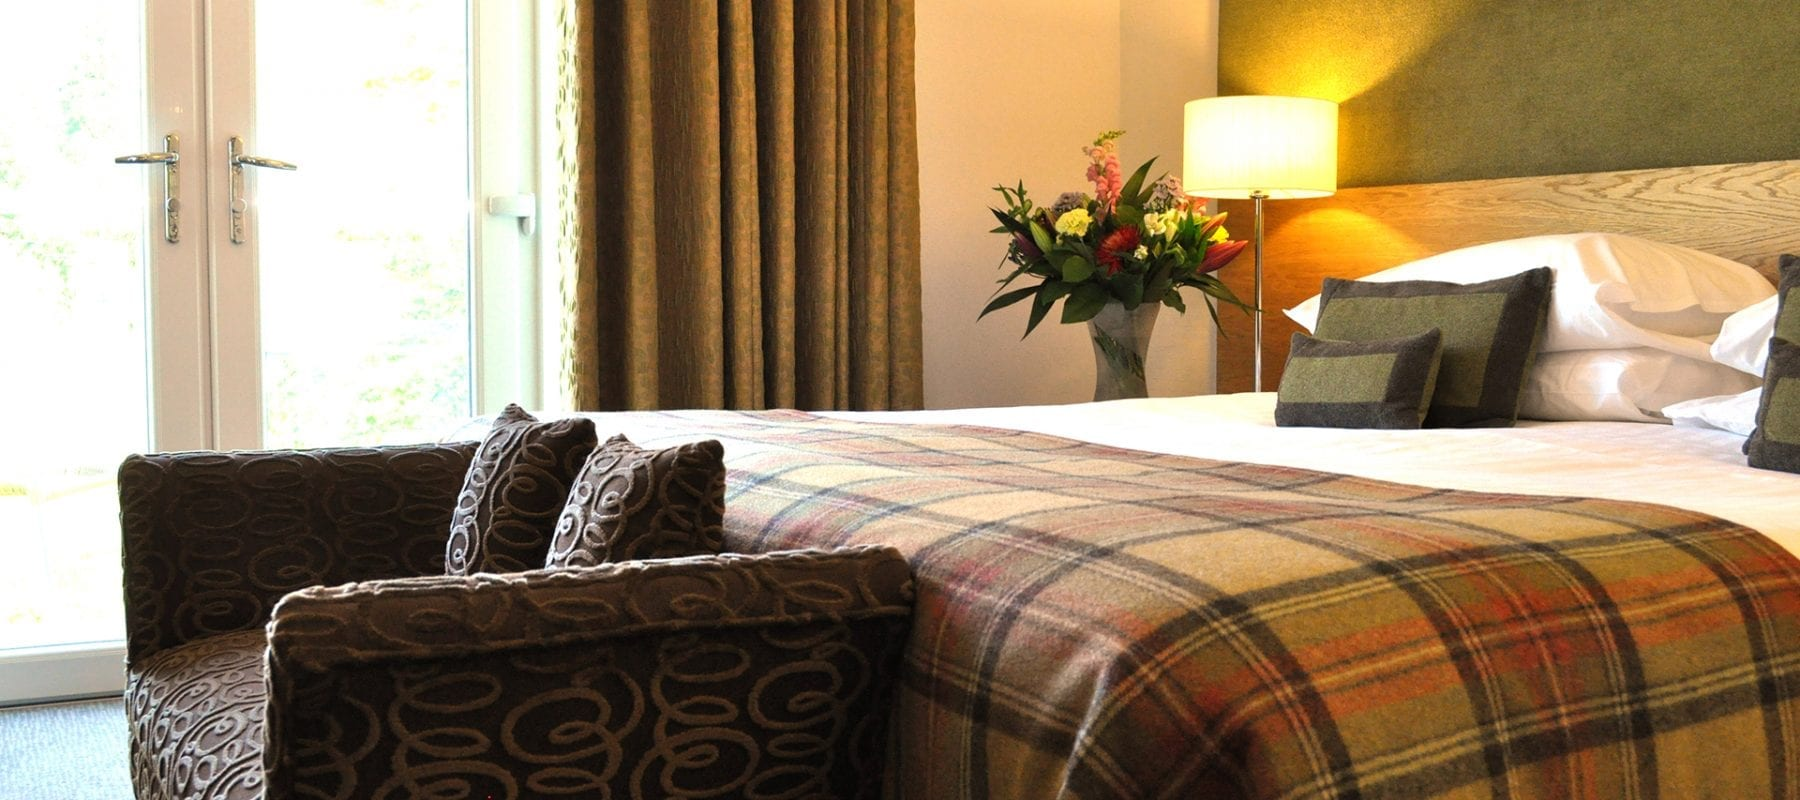 Risk-free Bookings for July & August from £99 per room B&B